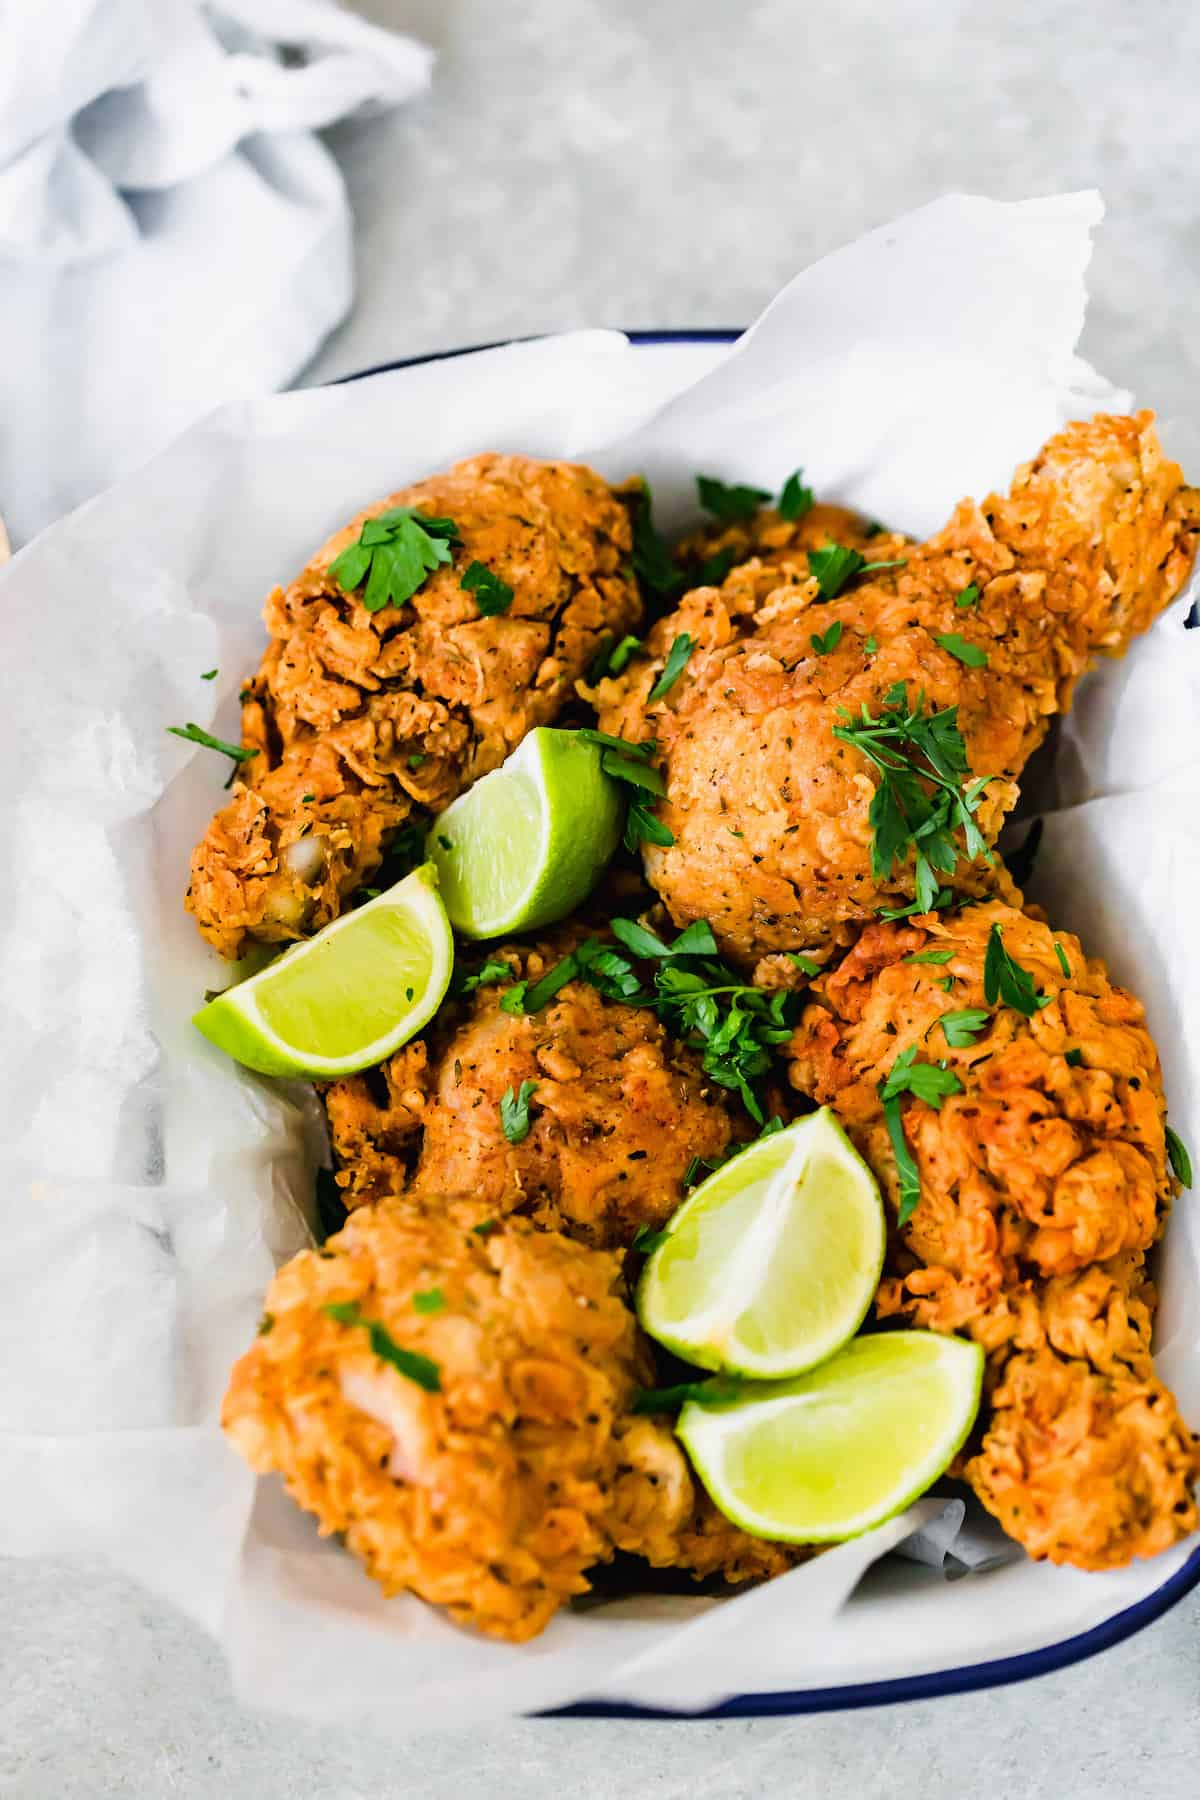 Fried Chicken in a Dish Lined with A Piece of Parchment Paper